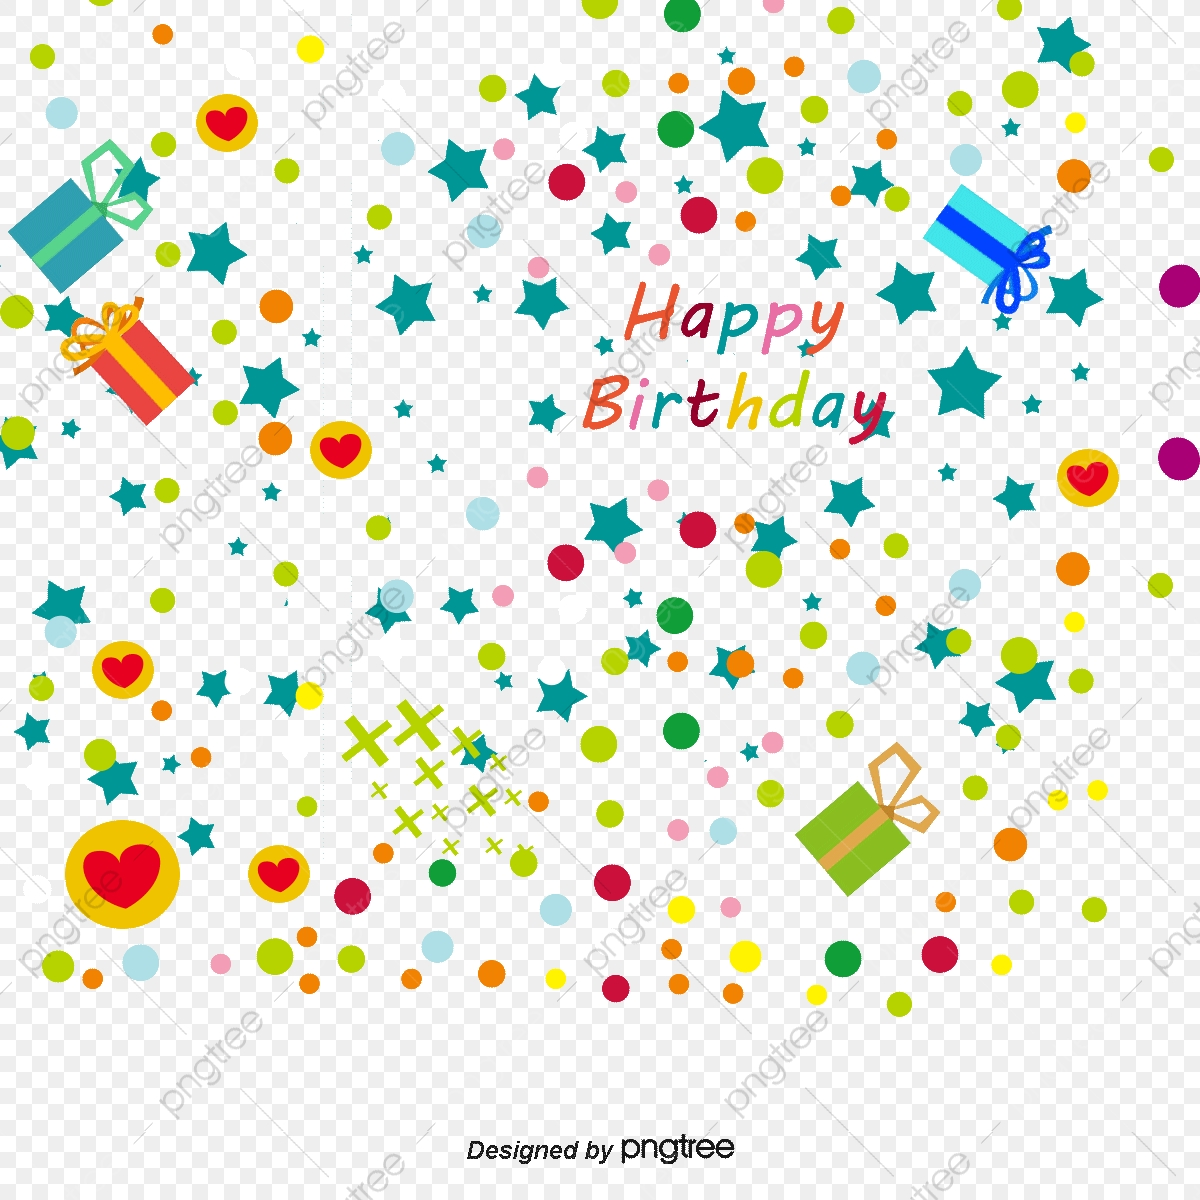 Free happy birthday clipart decoration.